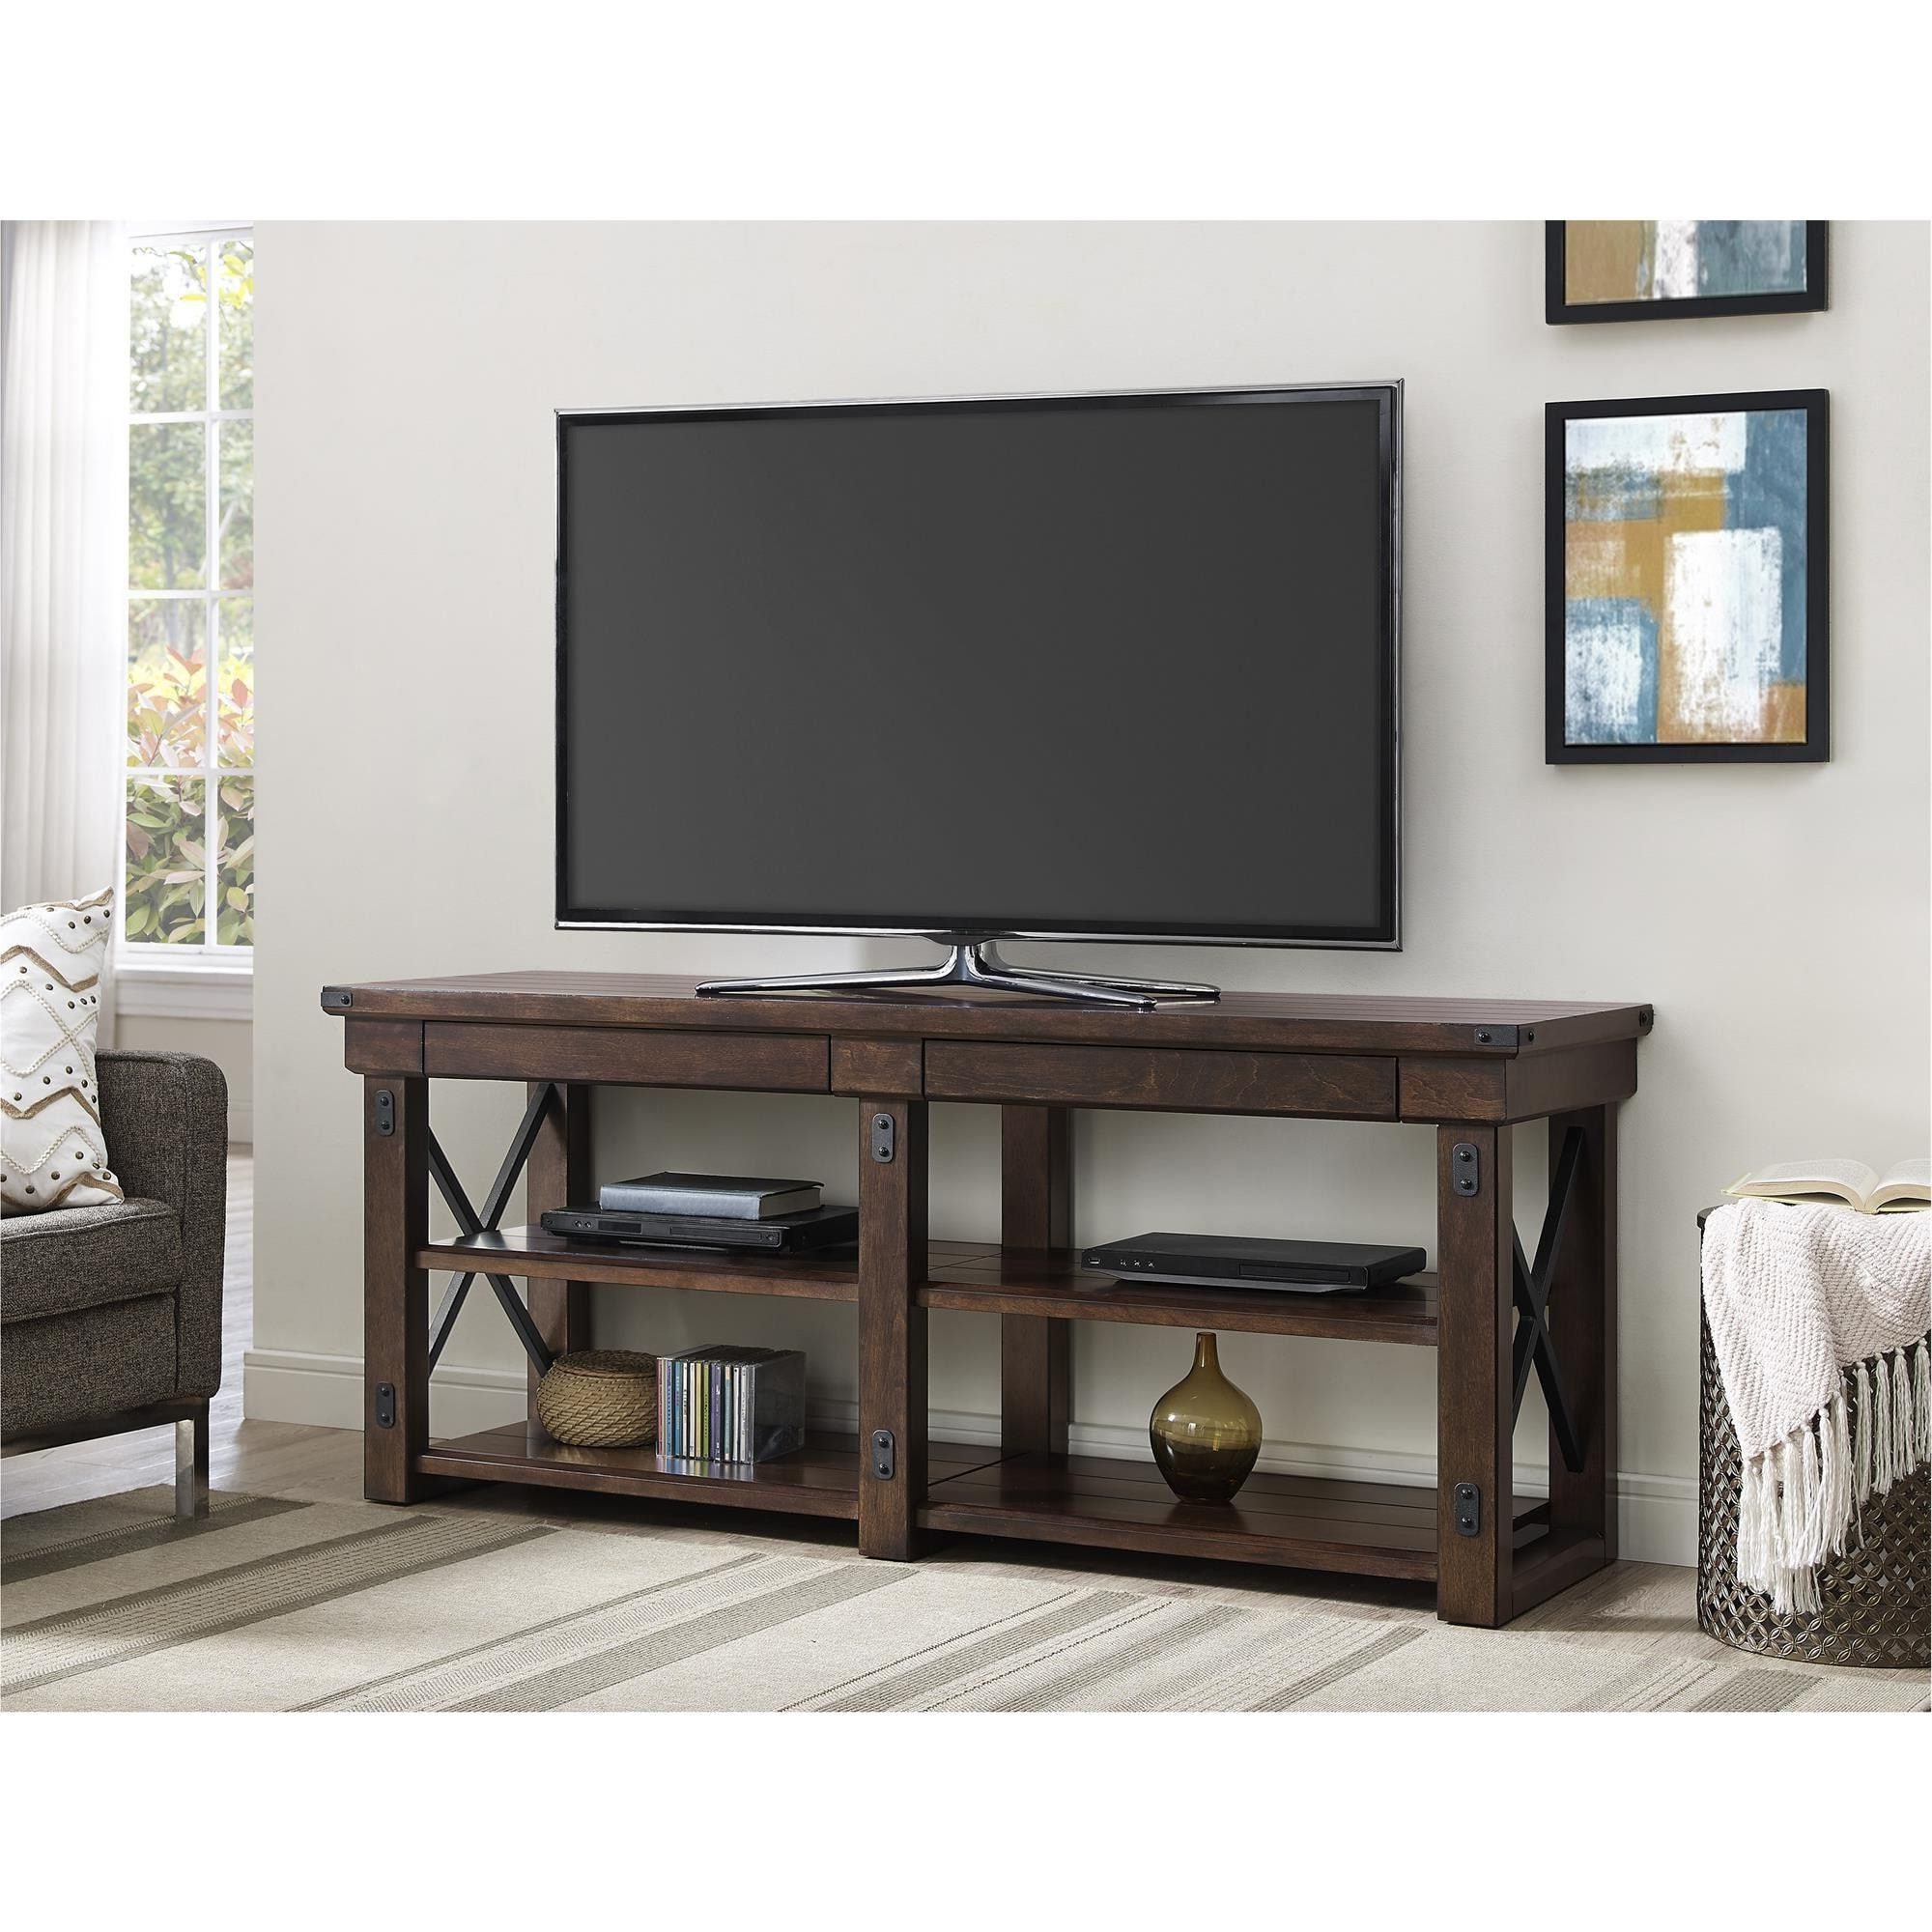 Most Popular Lockable Tv Stands Pertaining To Ameriwood Home Wildwood Mahogany Veneer 65 Inch Tv Stand (65 Inch Tv (View 8 of 20)